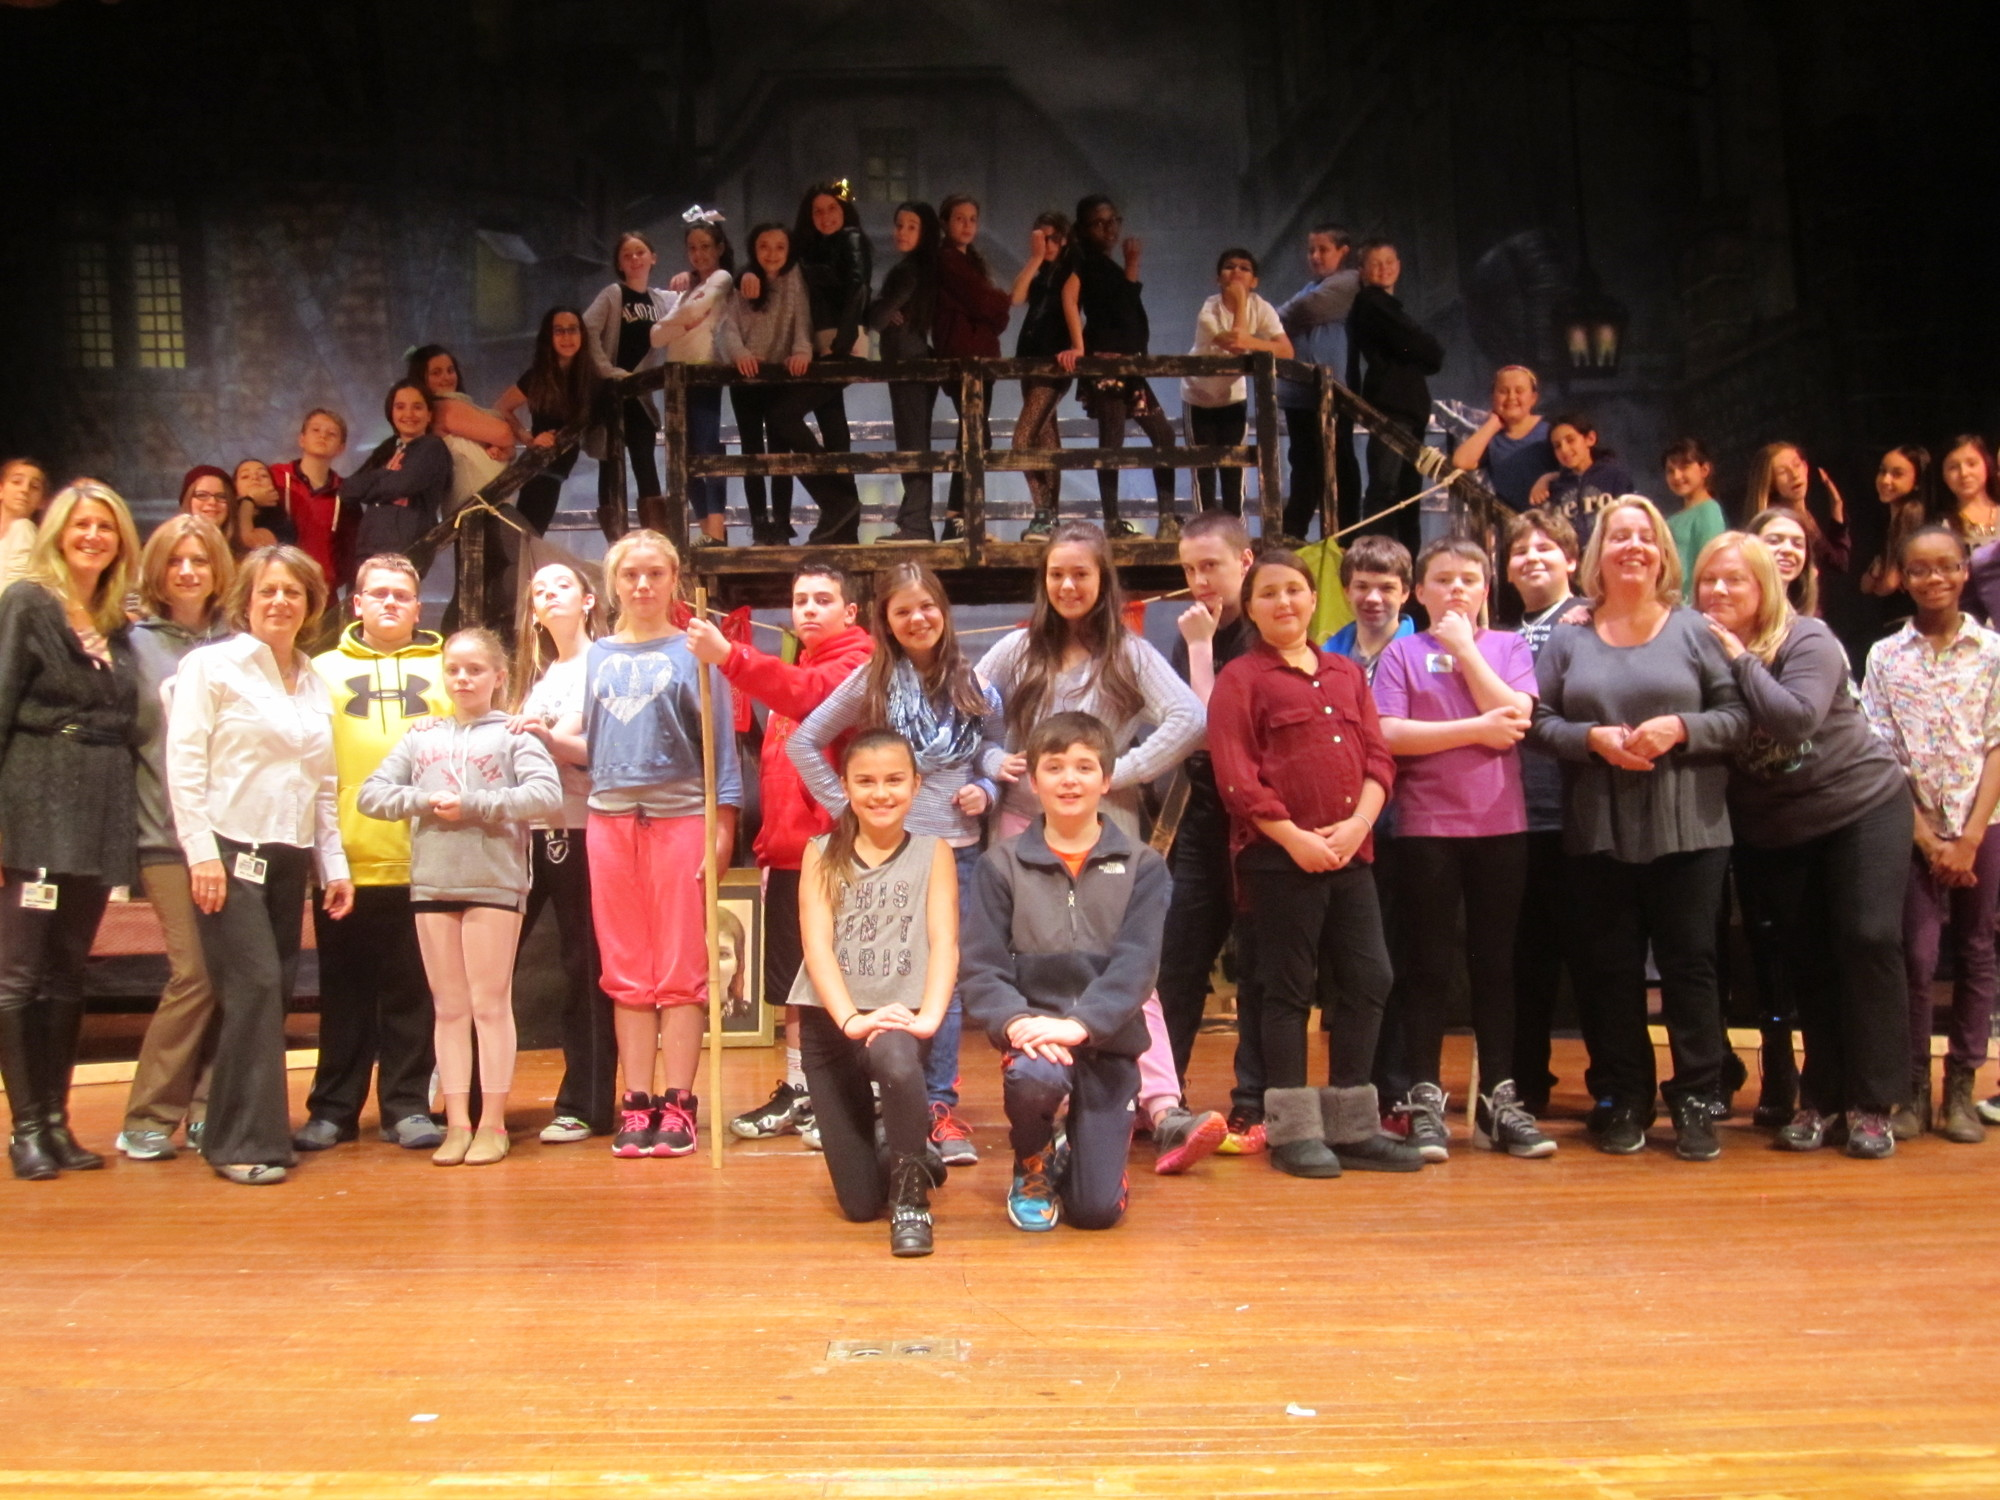 The cast from the North Merrick School District�s production of �Oliver!� which will play Friday, March 21 and Saturday, March 22 at Brookside School, assembled onstage during a rehearsal on March 10.